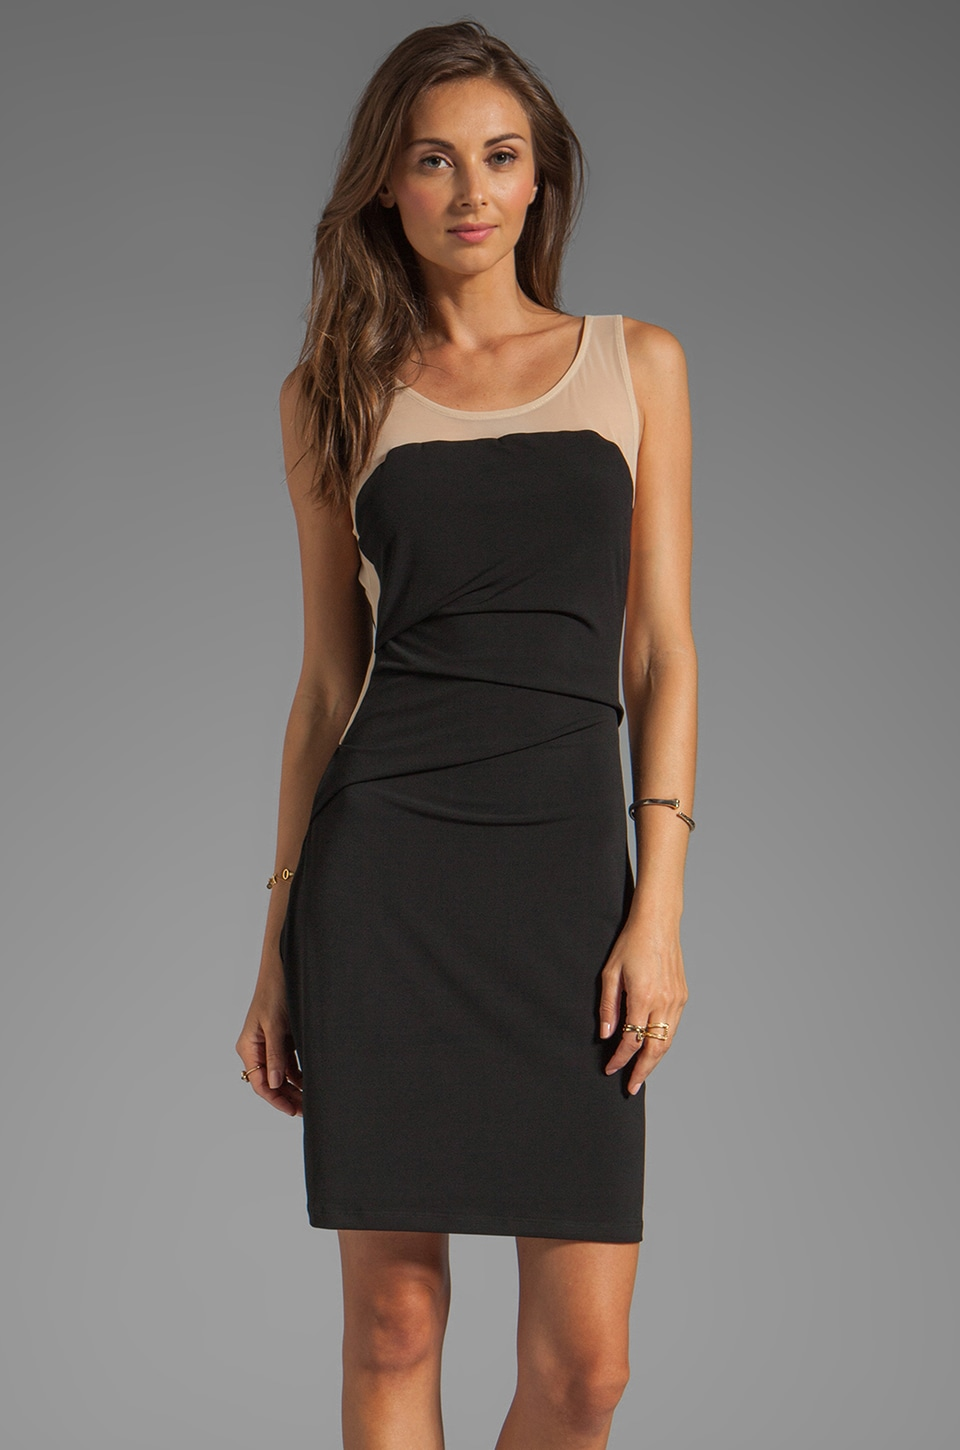 Graham & Spencer Stretch Jersey Mesh Strapless Dress in Black